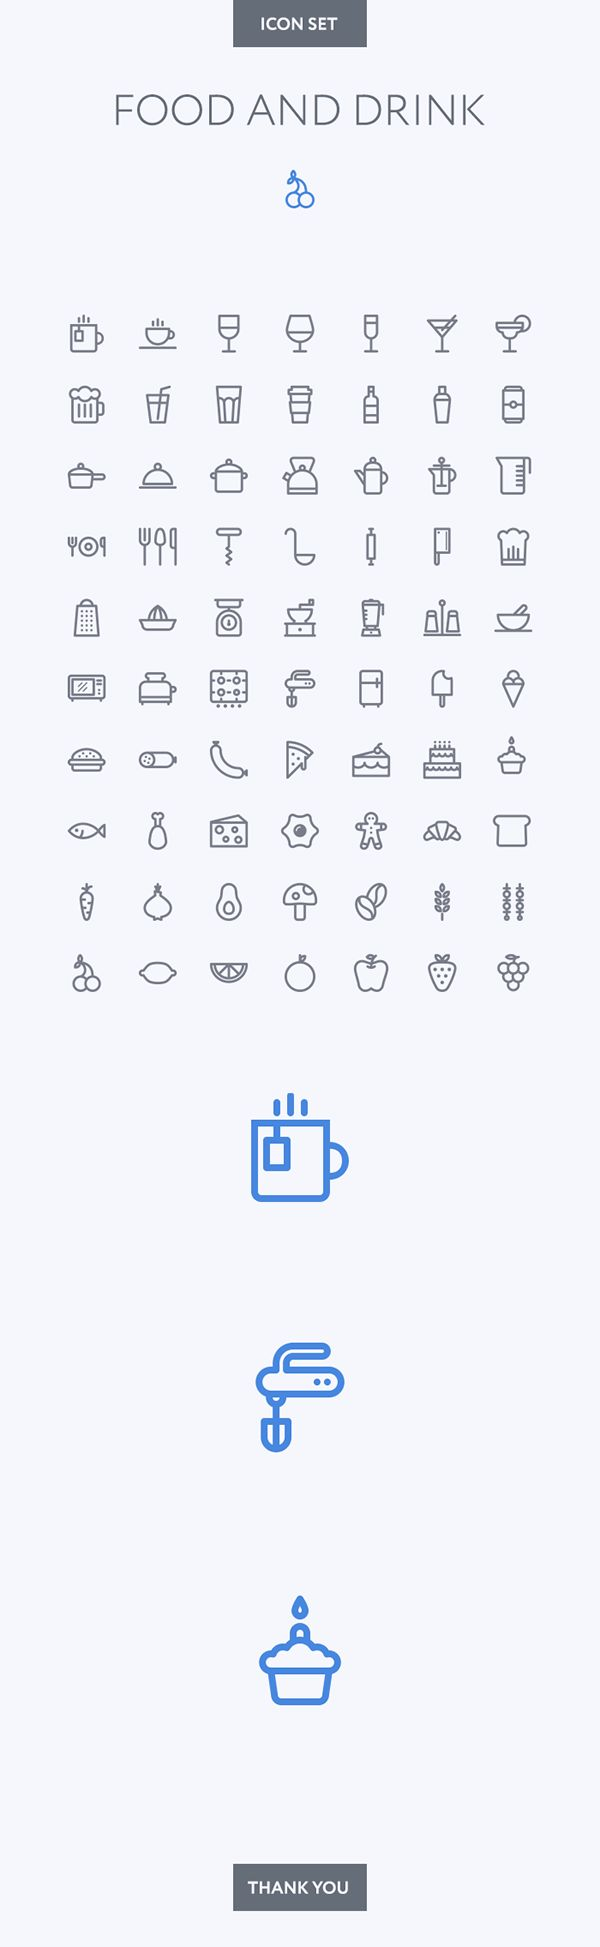 Food and Drink icon set on Behance                                                                                                                                                                                 More